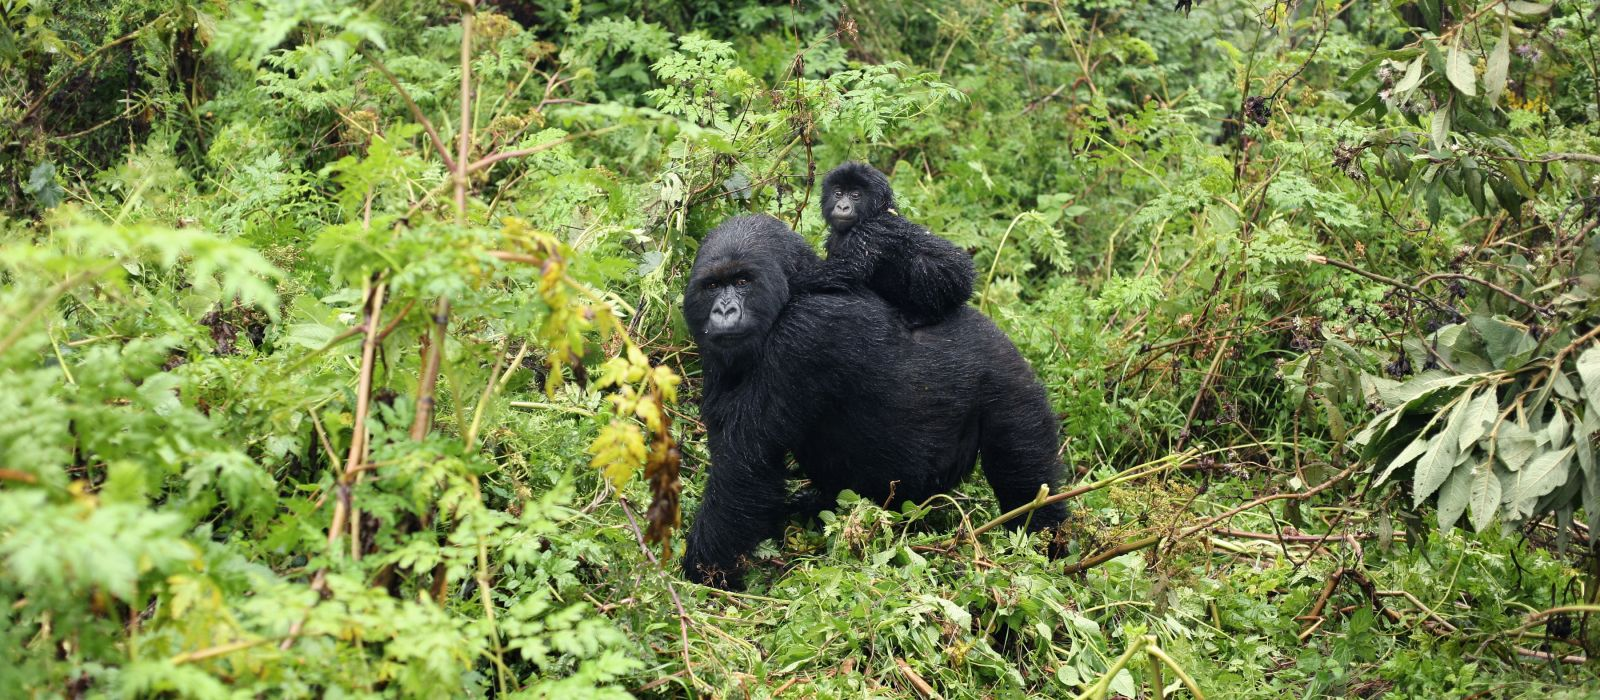 Baby Mountain gorilla sitting on his mother in the Virunga National Park, Democratic Republic Of Congo